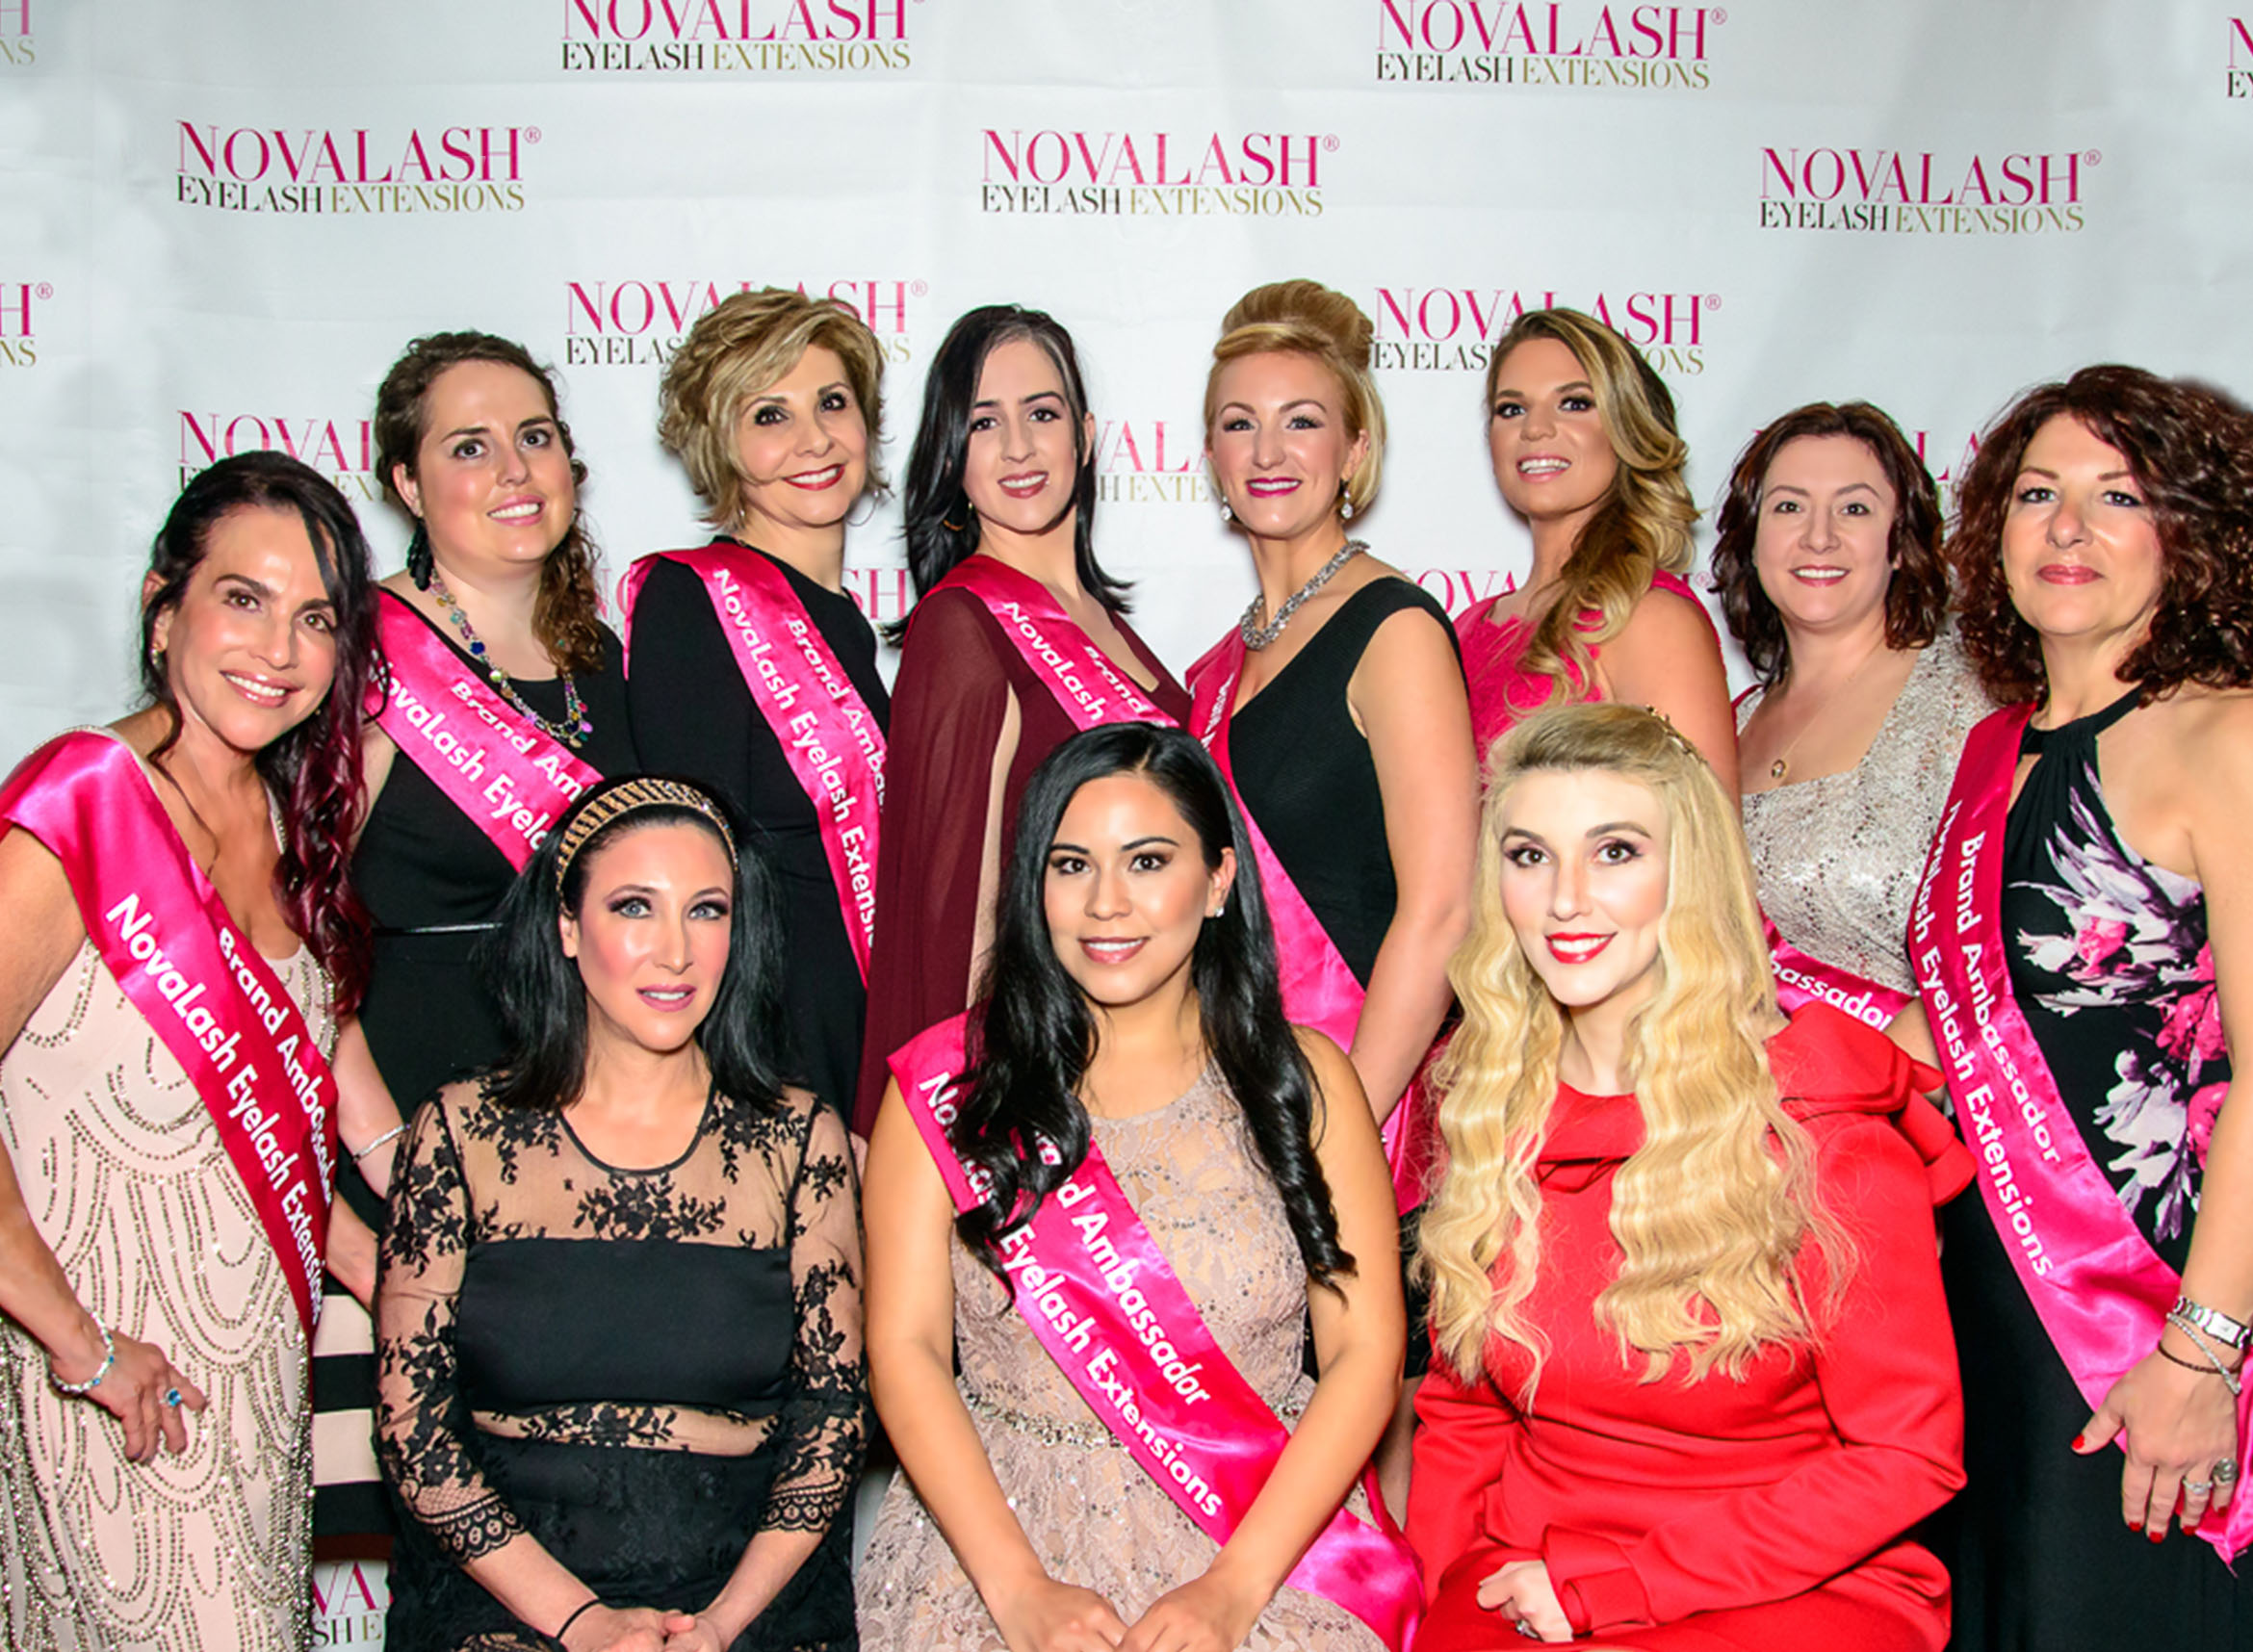 Pictured (front row, l-r seated ) are NovaLash Brand Ambassadors Sophia Navarro and Bianca Martinez with NovaLash President Sophy Merszei, and (back row, l-r) Brand Ambassadors Marilyn Burr, Trina Smith, Lauren Wade, Francesca Mastalka, Stefanie Thurman, Lindsey Josly-Rohner, Karlene Winchester and Michelle Mirizio